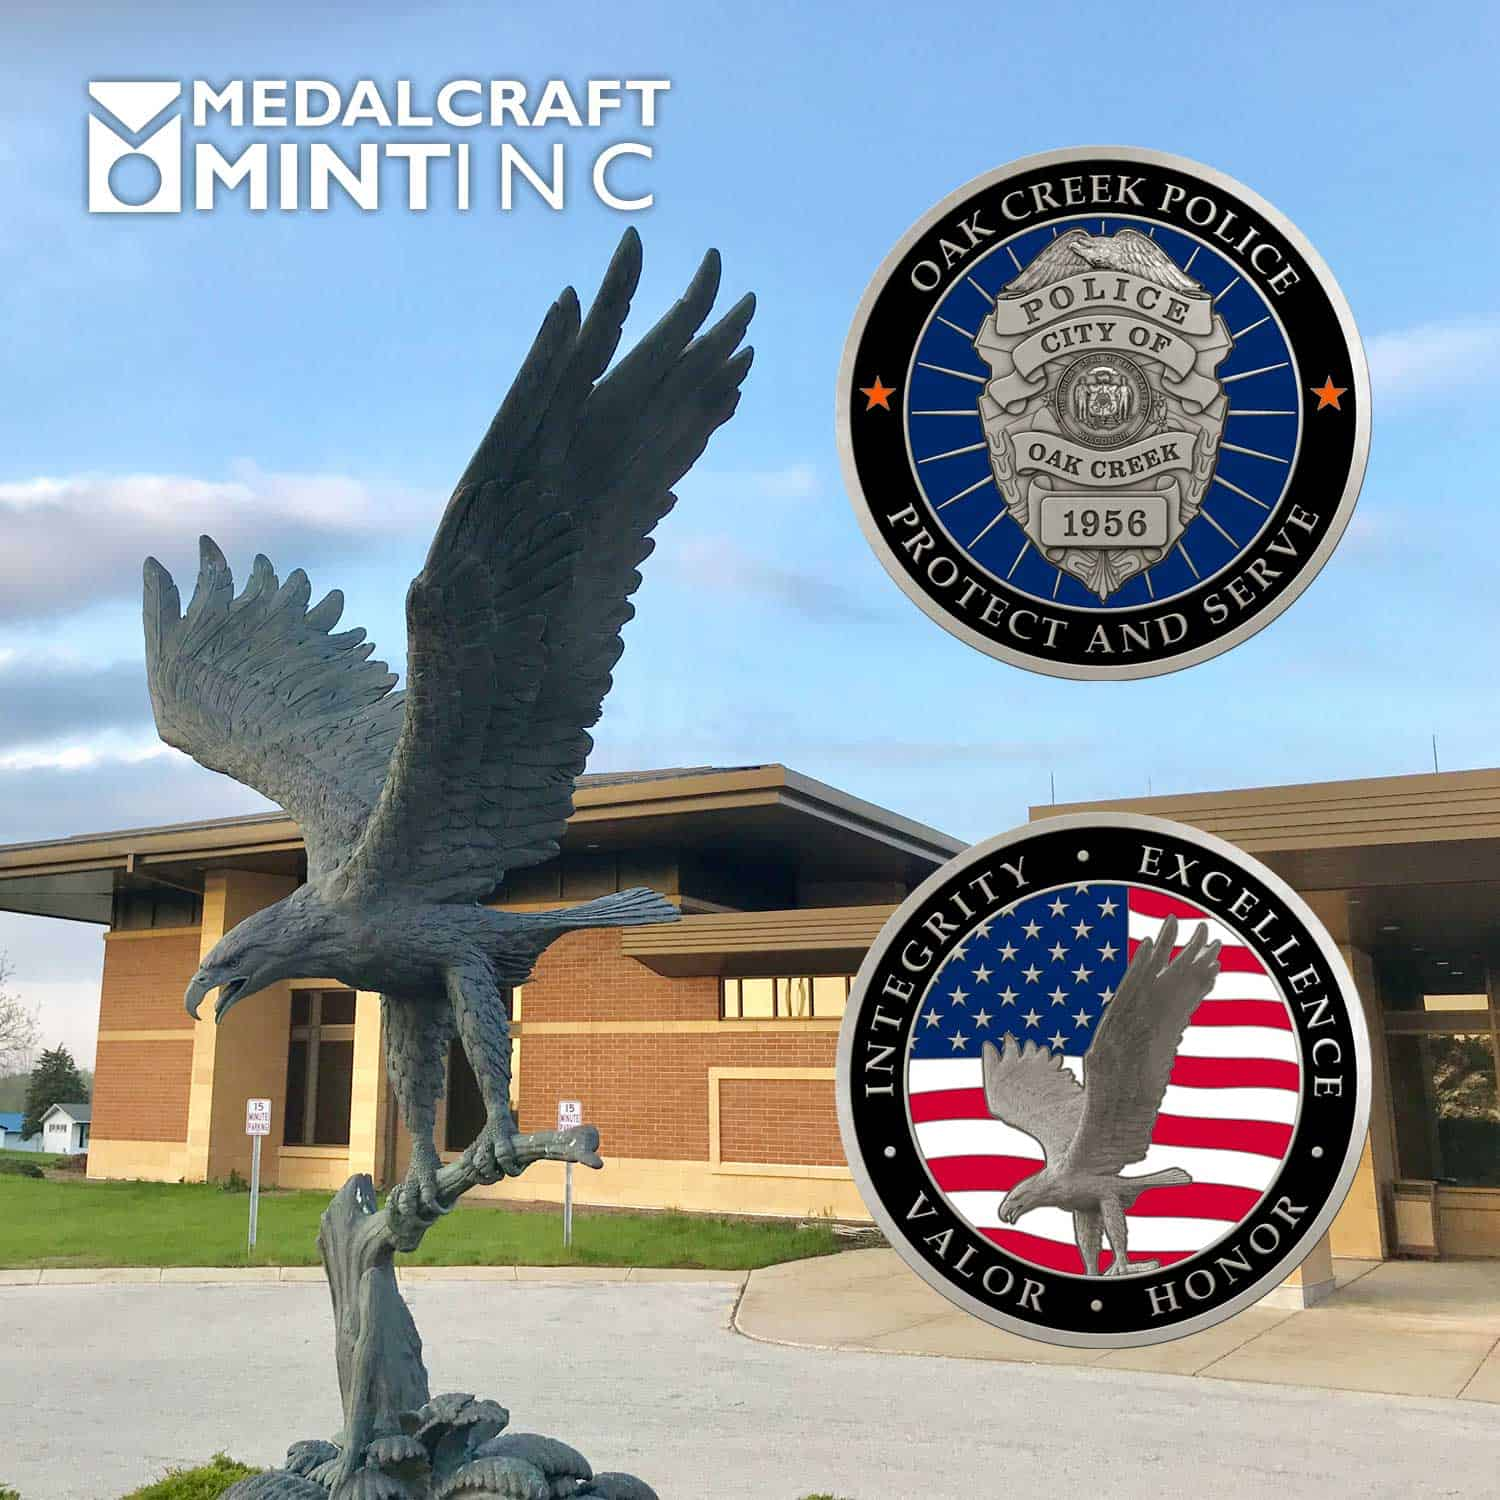 Our opportunity: Create a coin that features an iconic sculpture